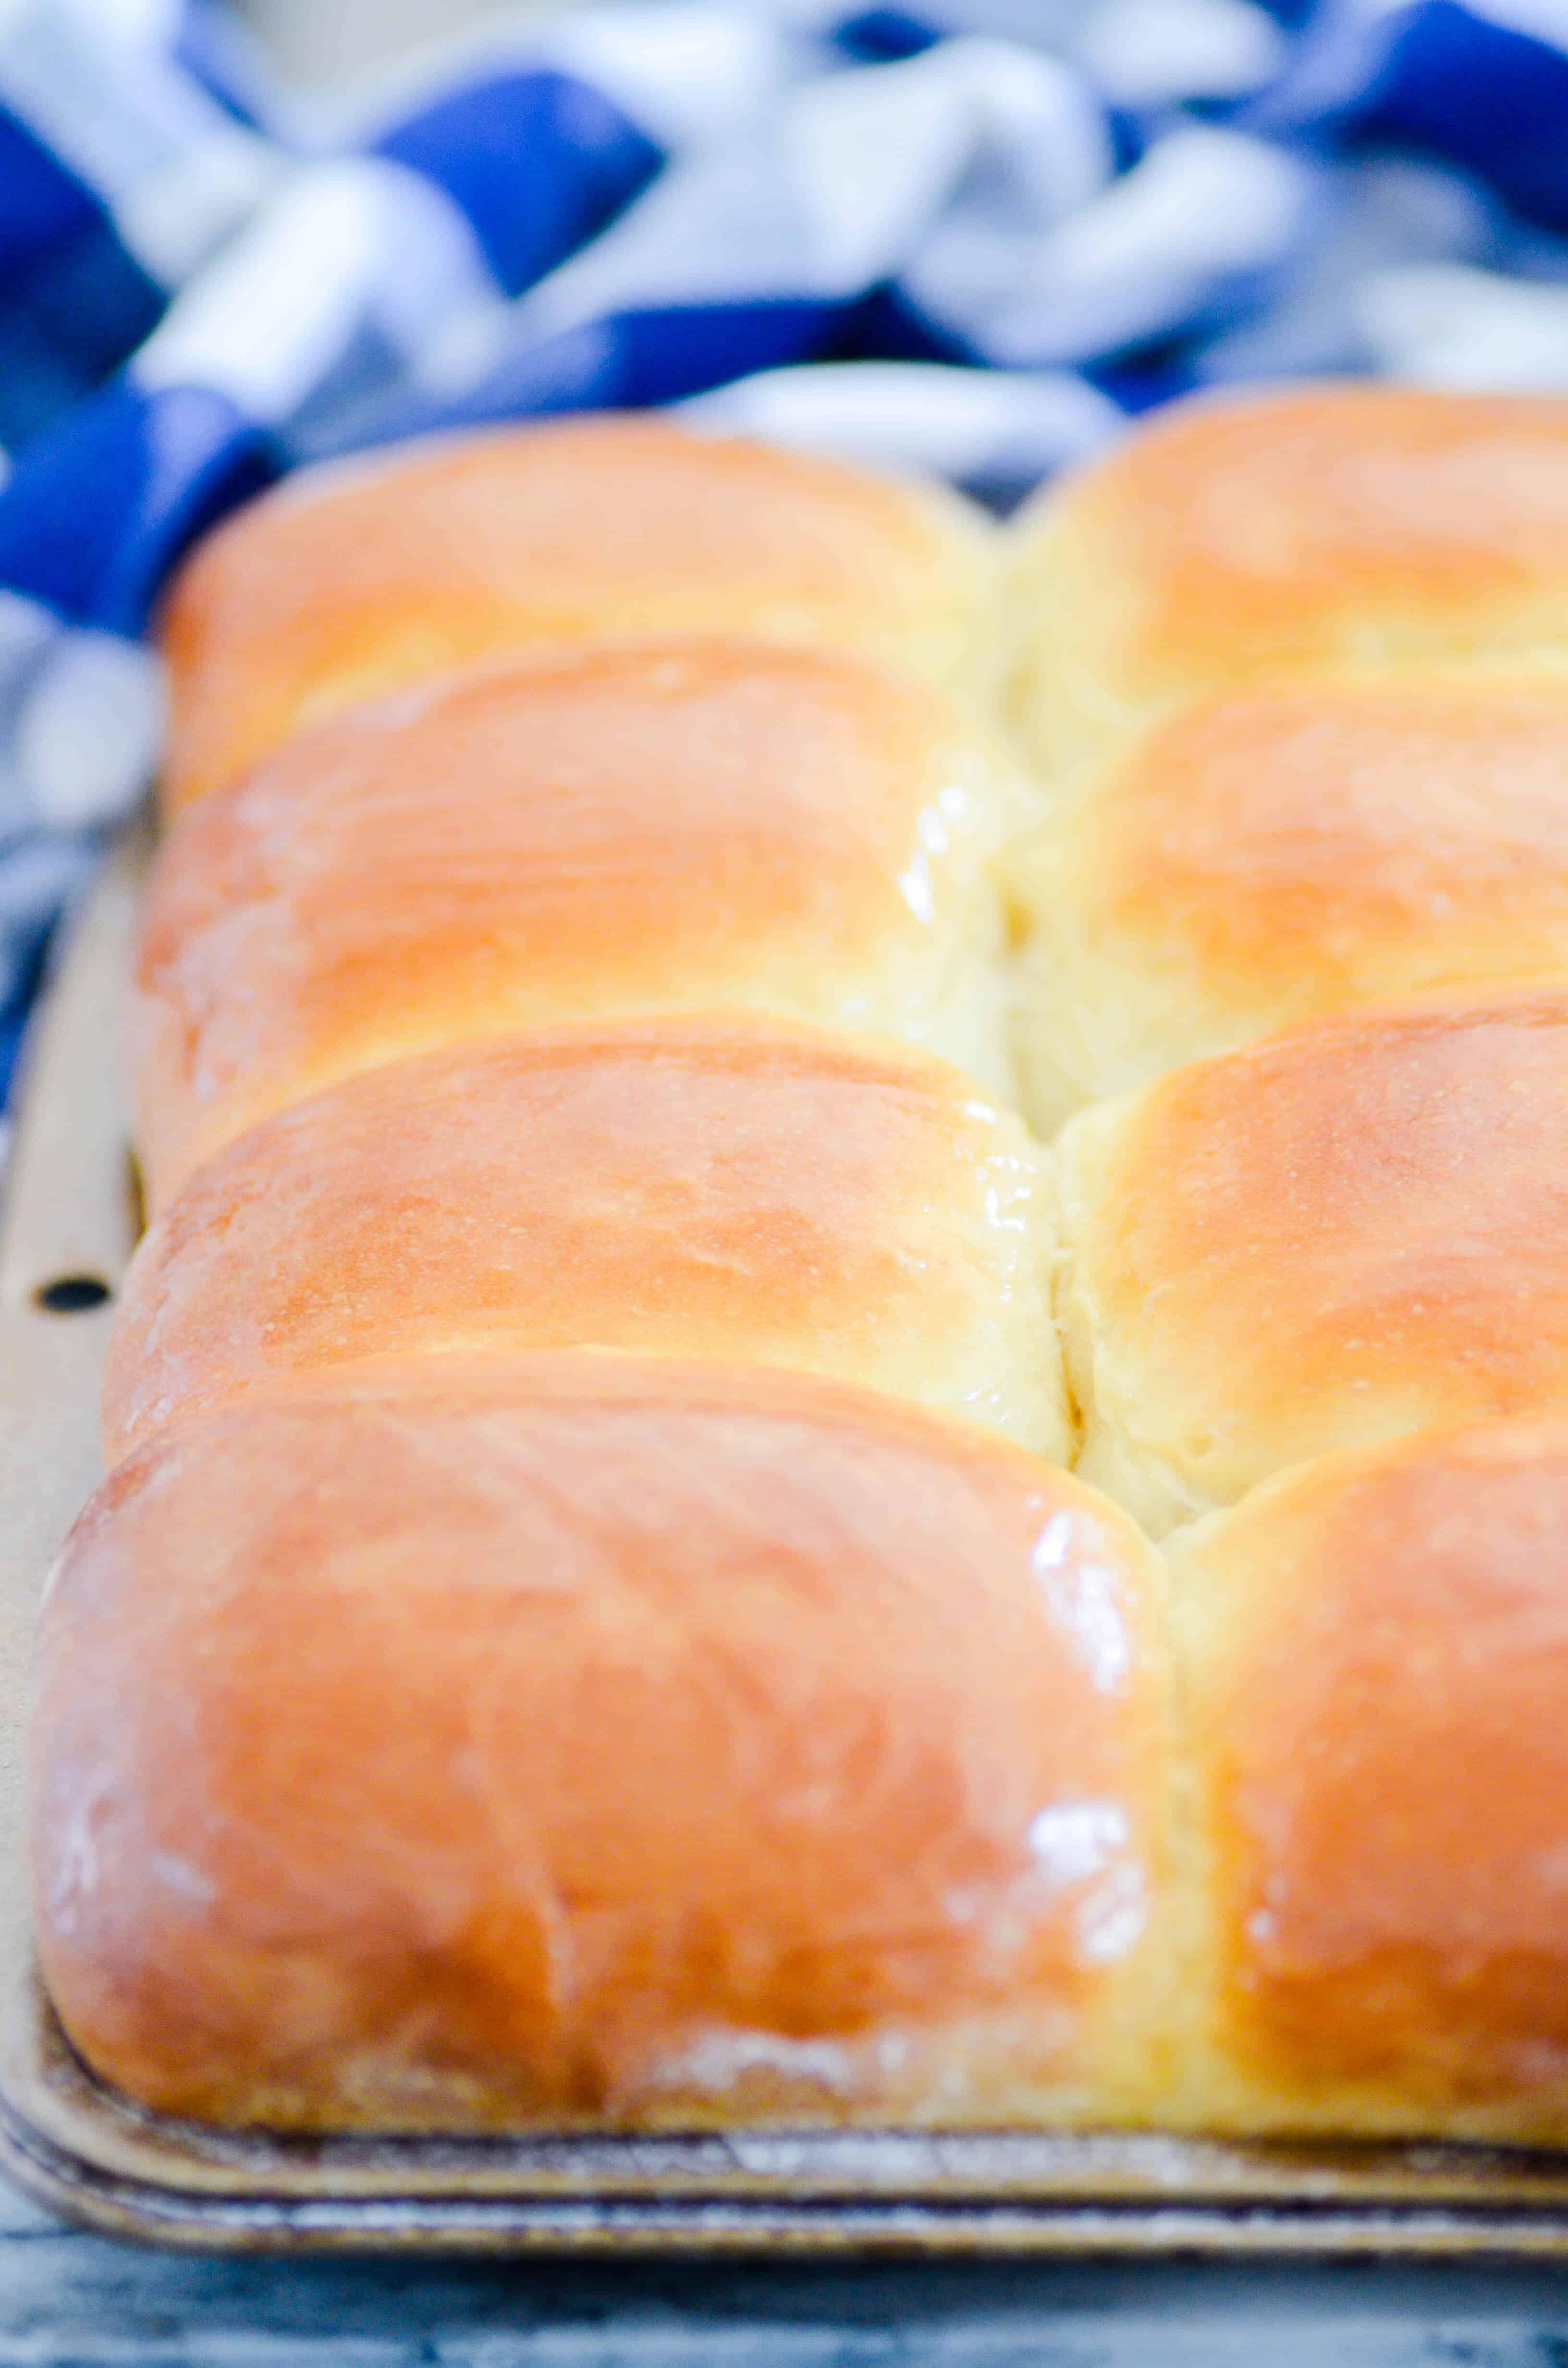 These dinner rolls are soft as pillows and perfectly brushed with melted butter. If you're looking for the perfect roll recipe, you've come to the right place!